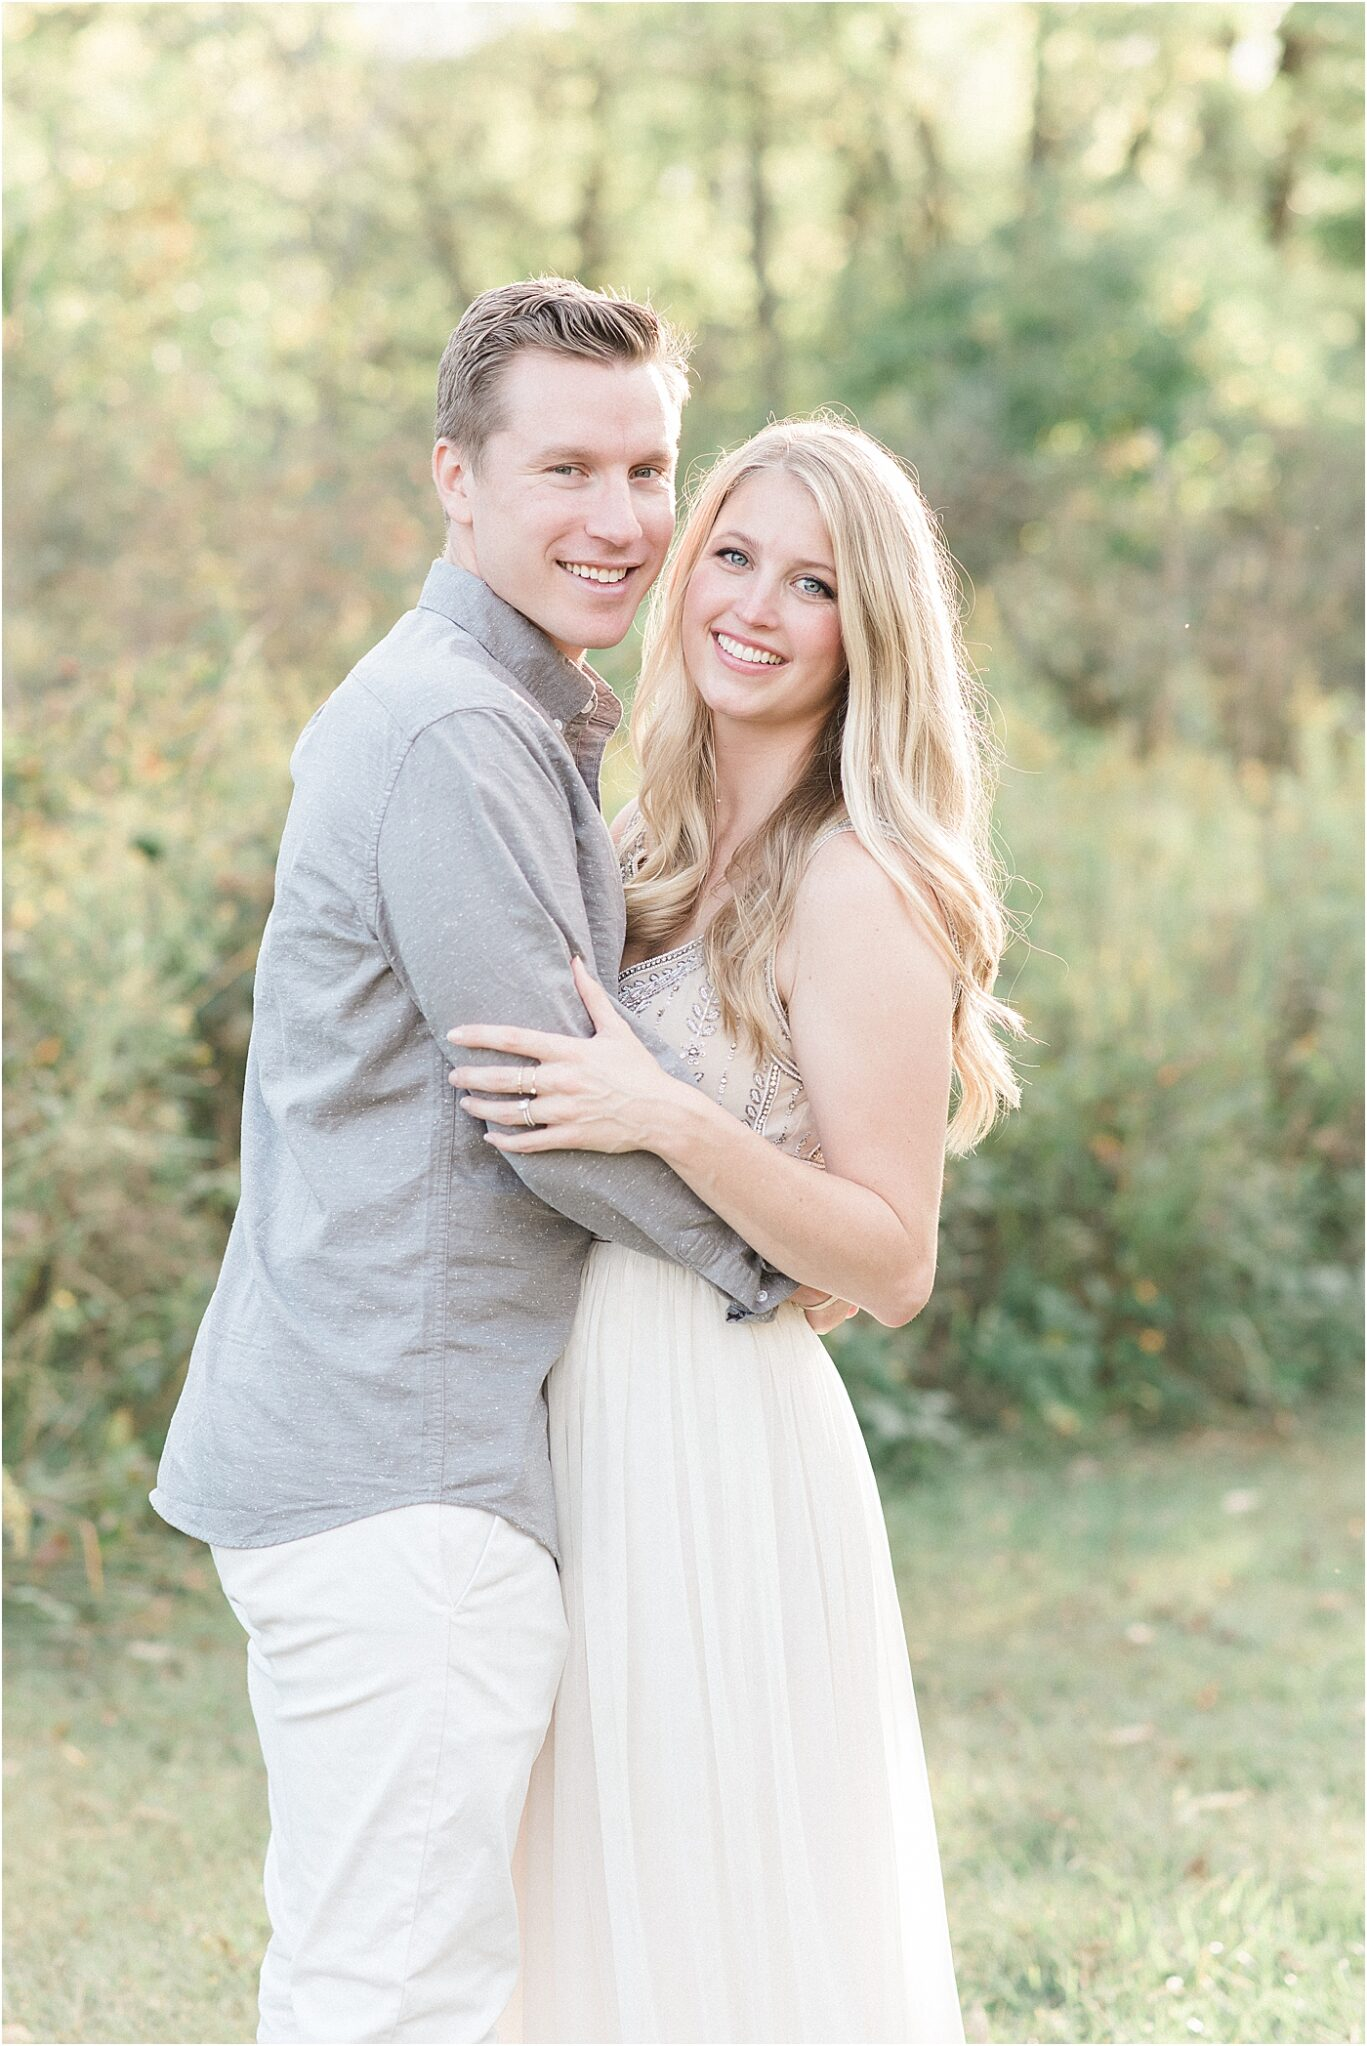 Couples photo during family session with Lindsay Konopa Photography in Noblesville, Indiana.